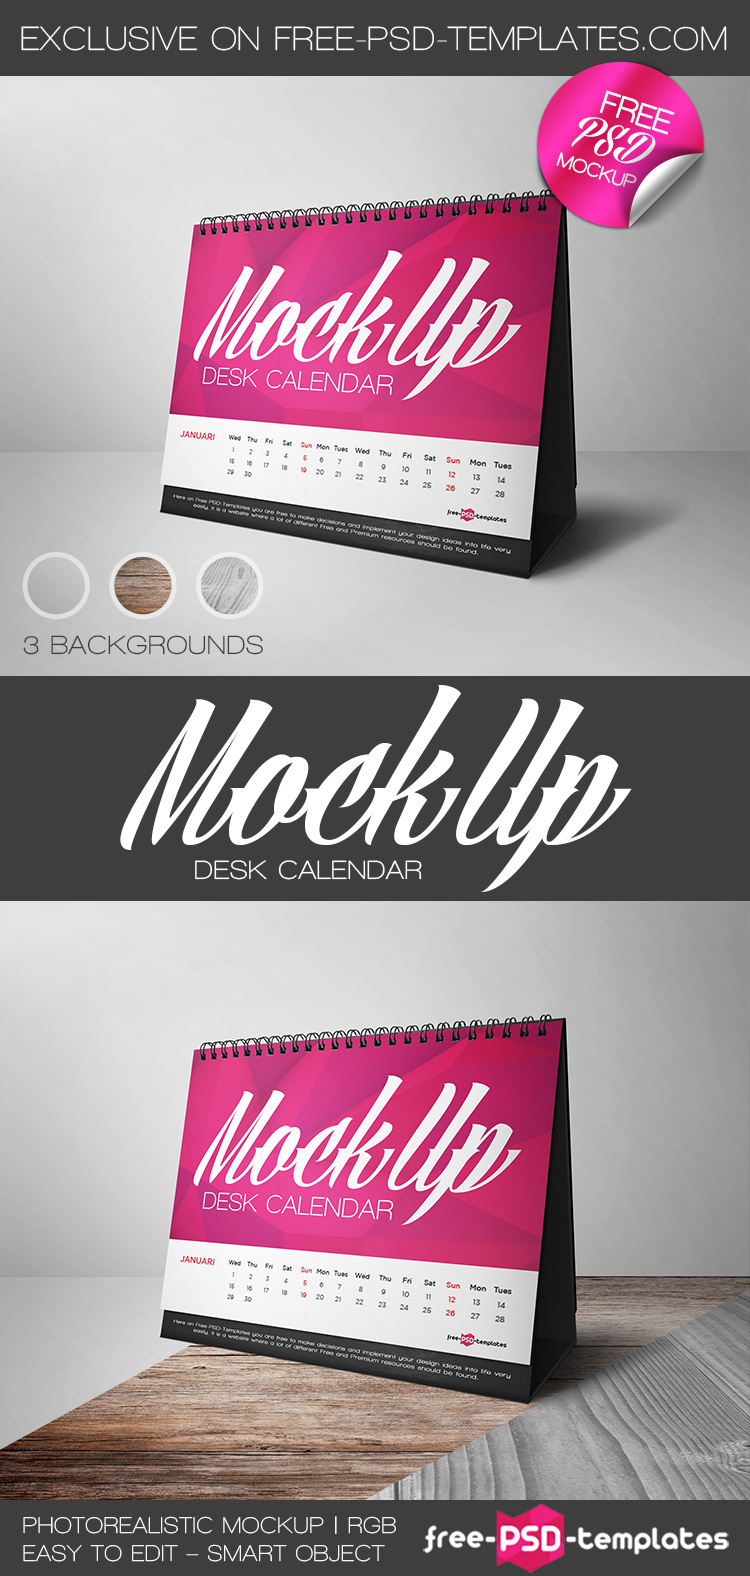 Table Calendar Mockup : Free desk calendar mock up in psd templates